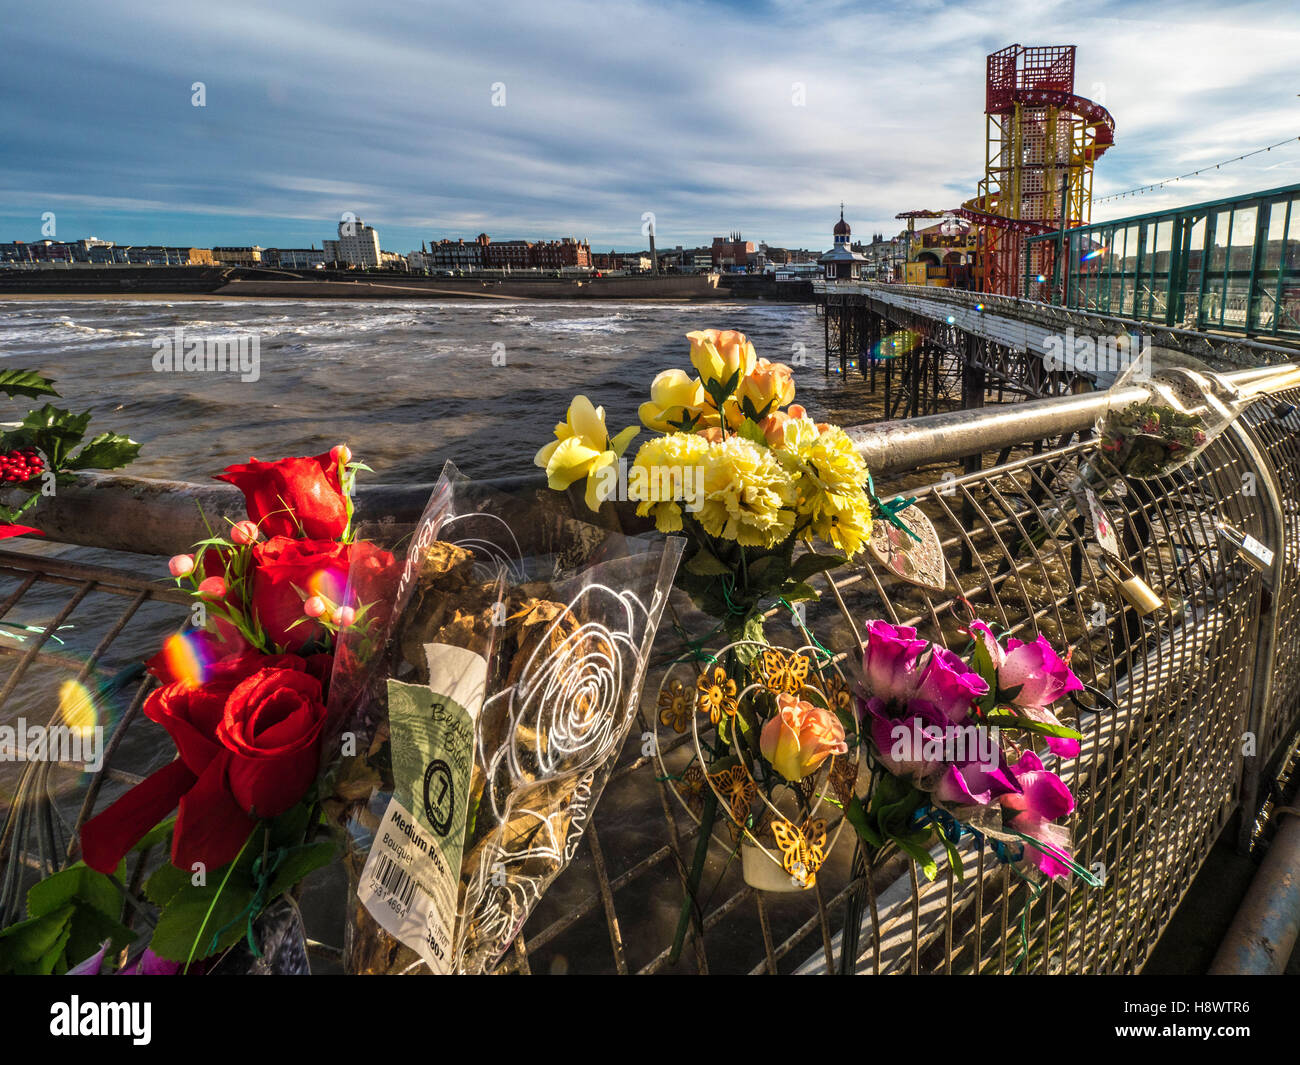 Flowers in memory of dead relatives and friends  tied to railings on North Pier, Blackpool, Lancashire, UK. - Stock Image